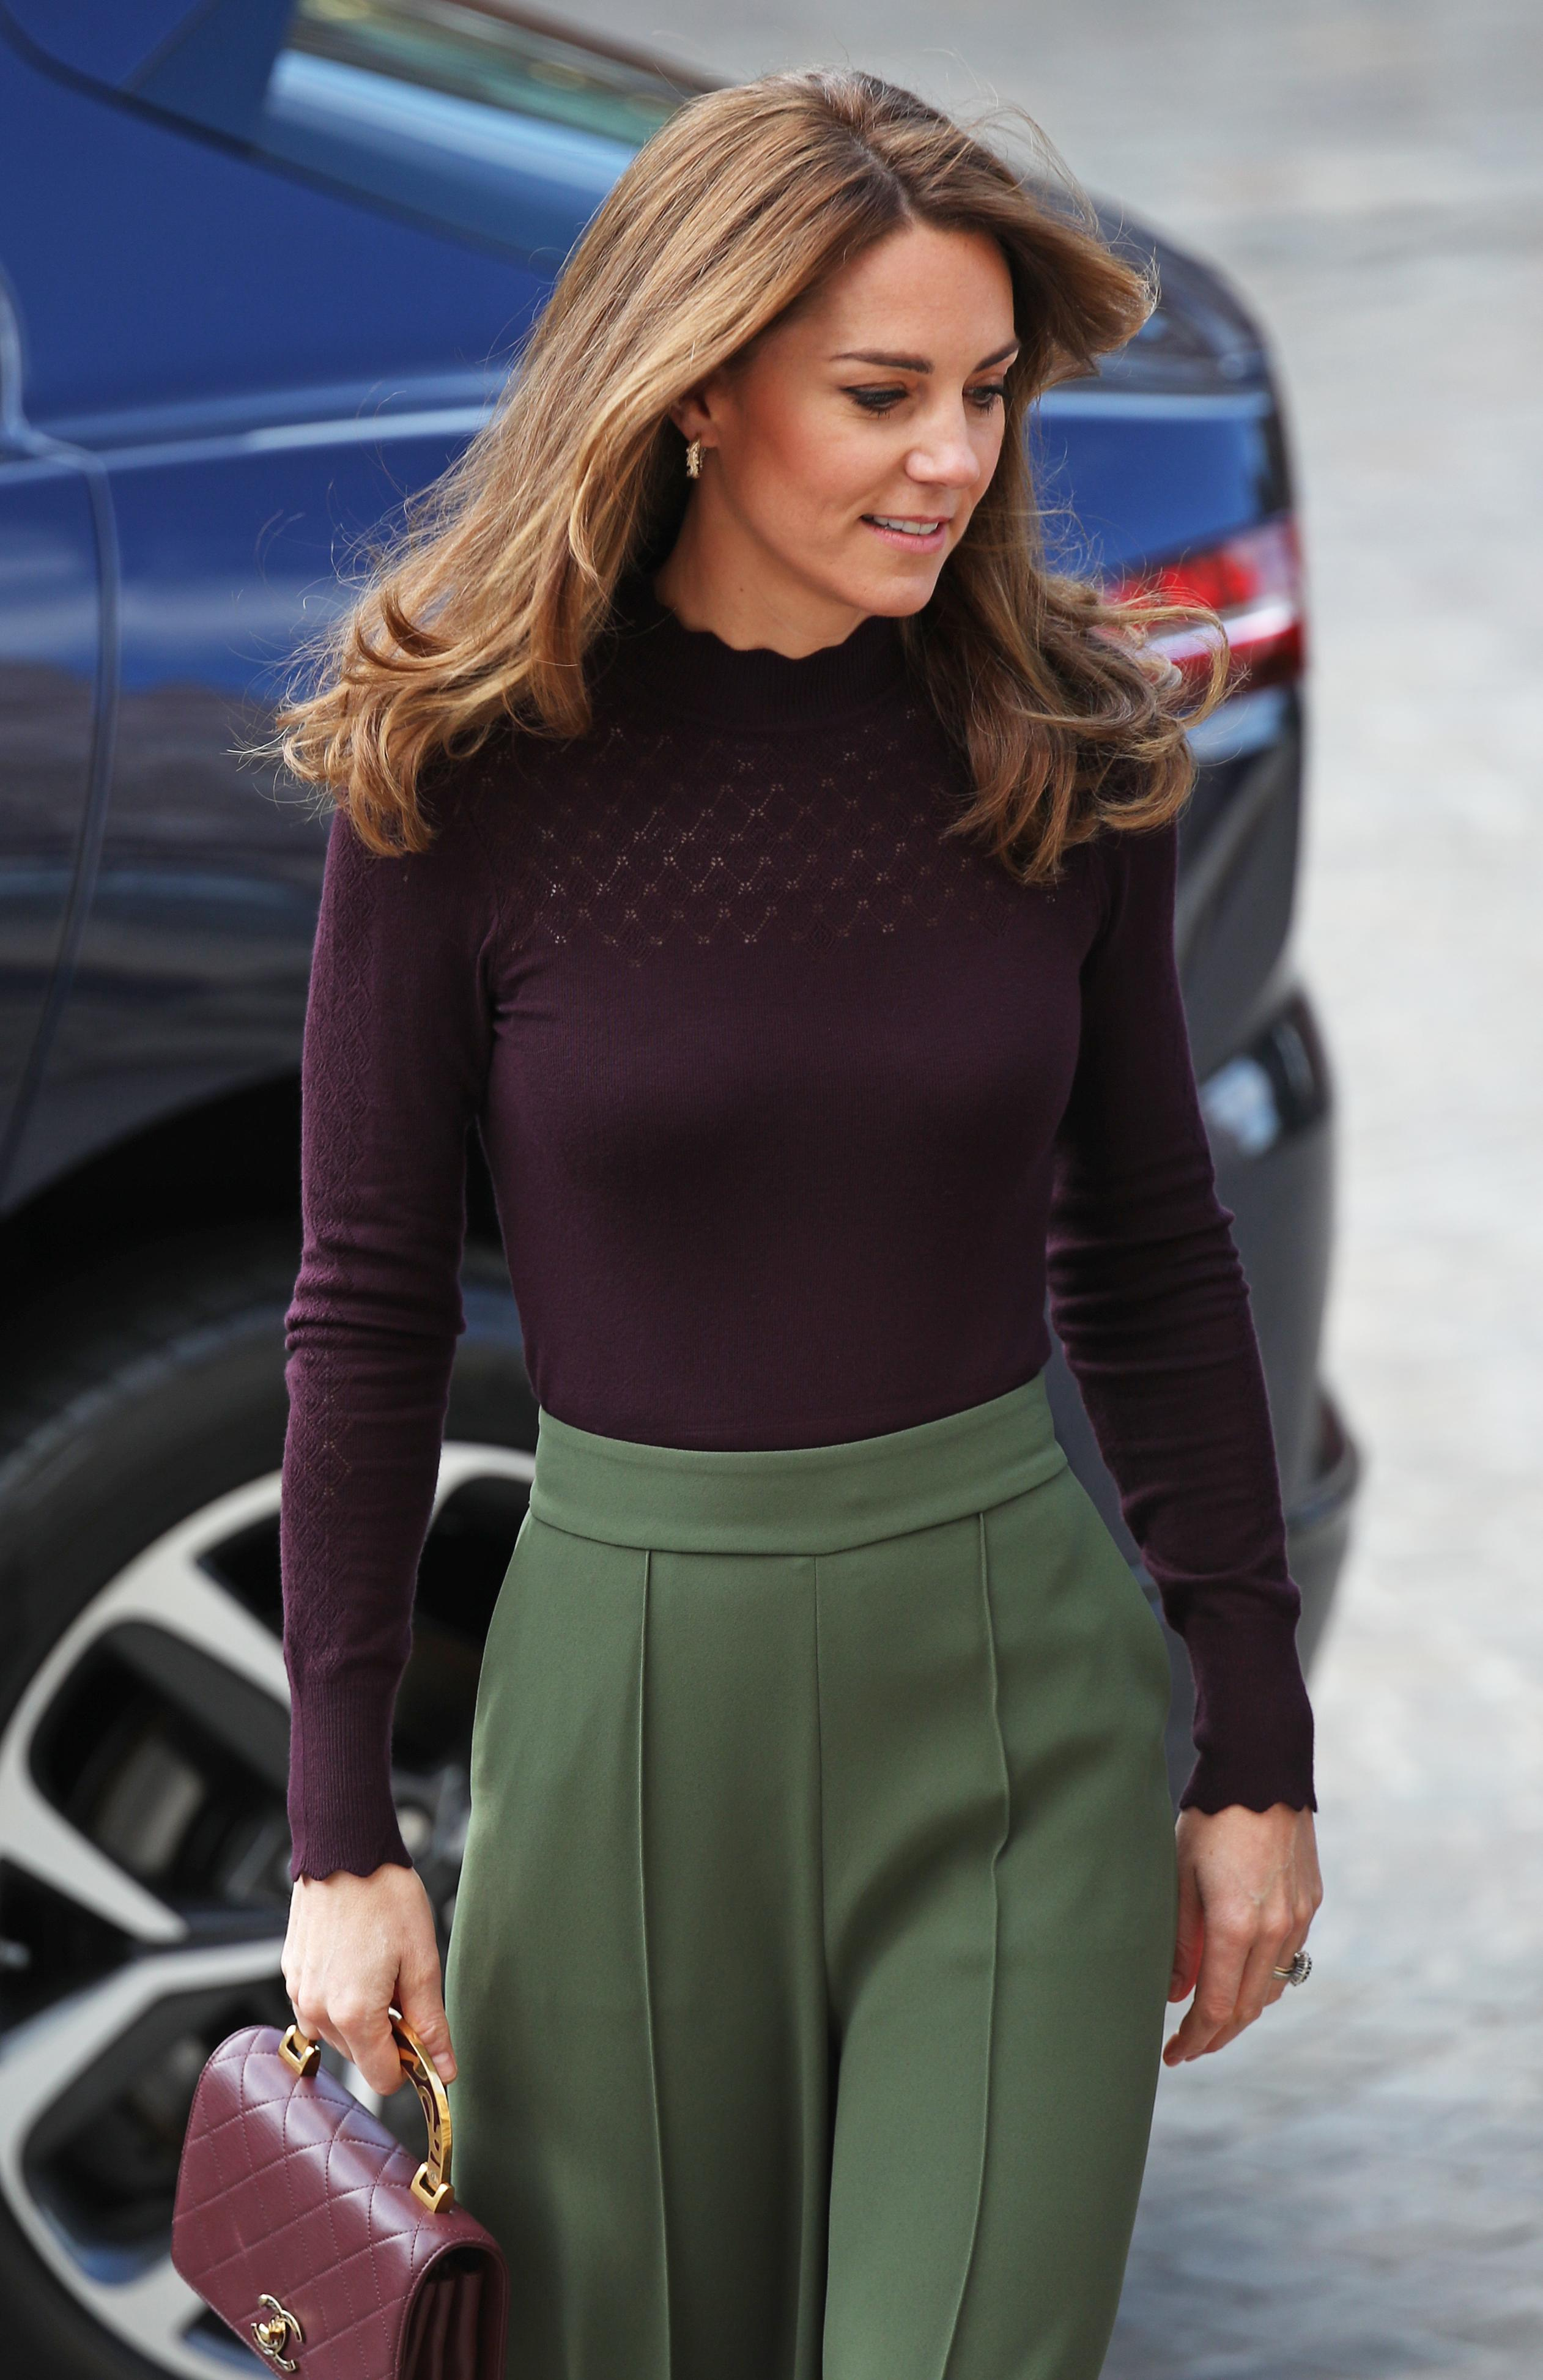 Duchess of Cambridge visits the Natural History Museum on 9 October, 2019 [Photo: Getty]